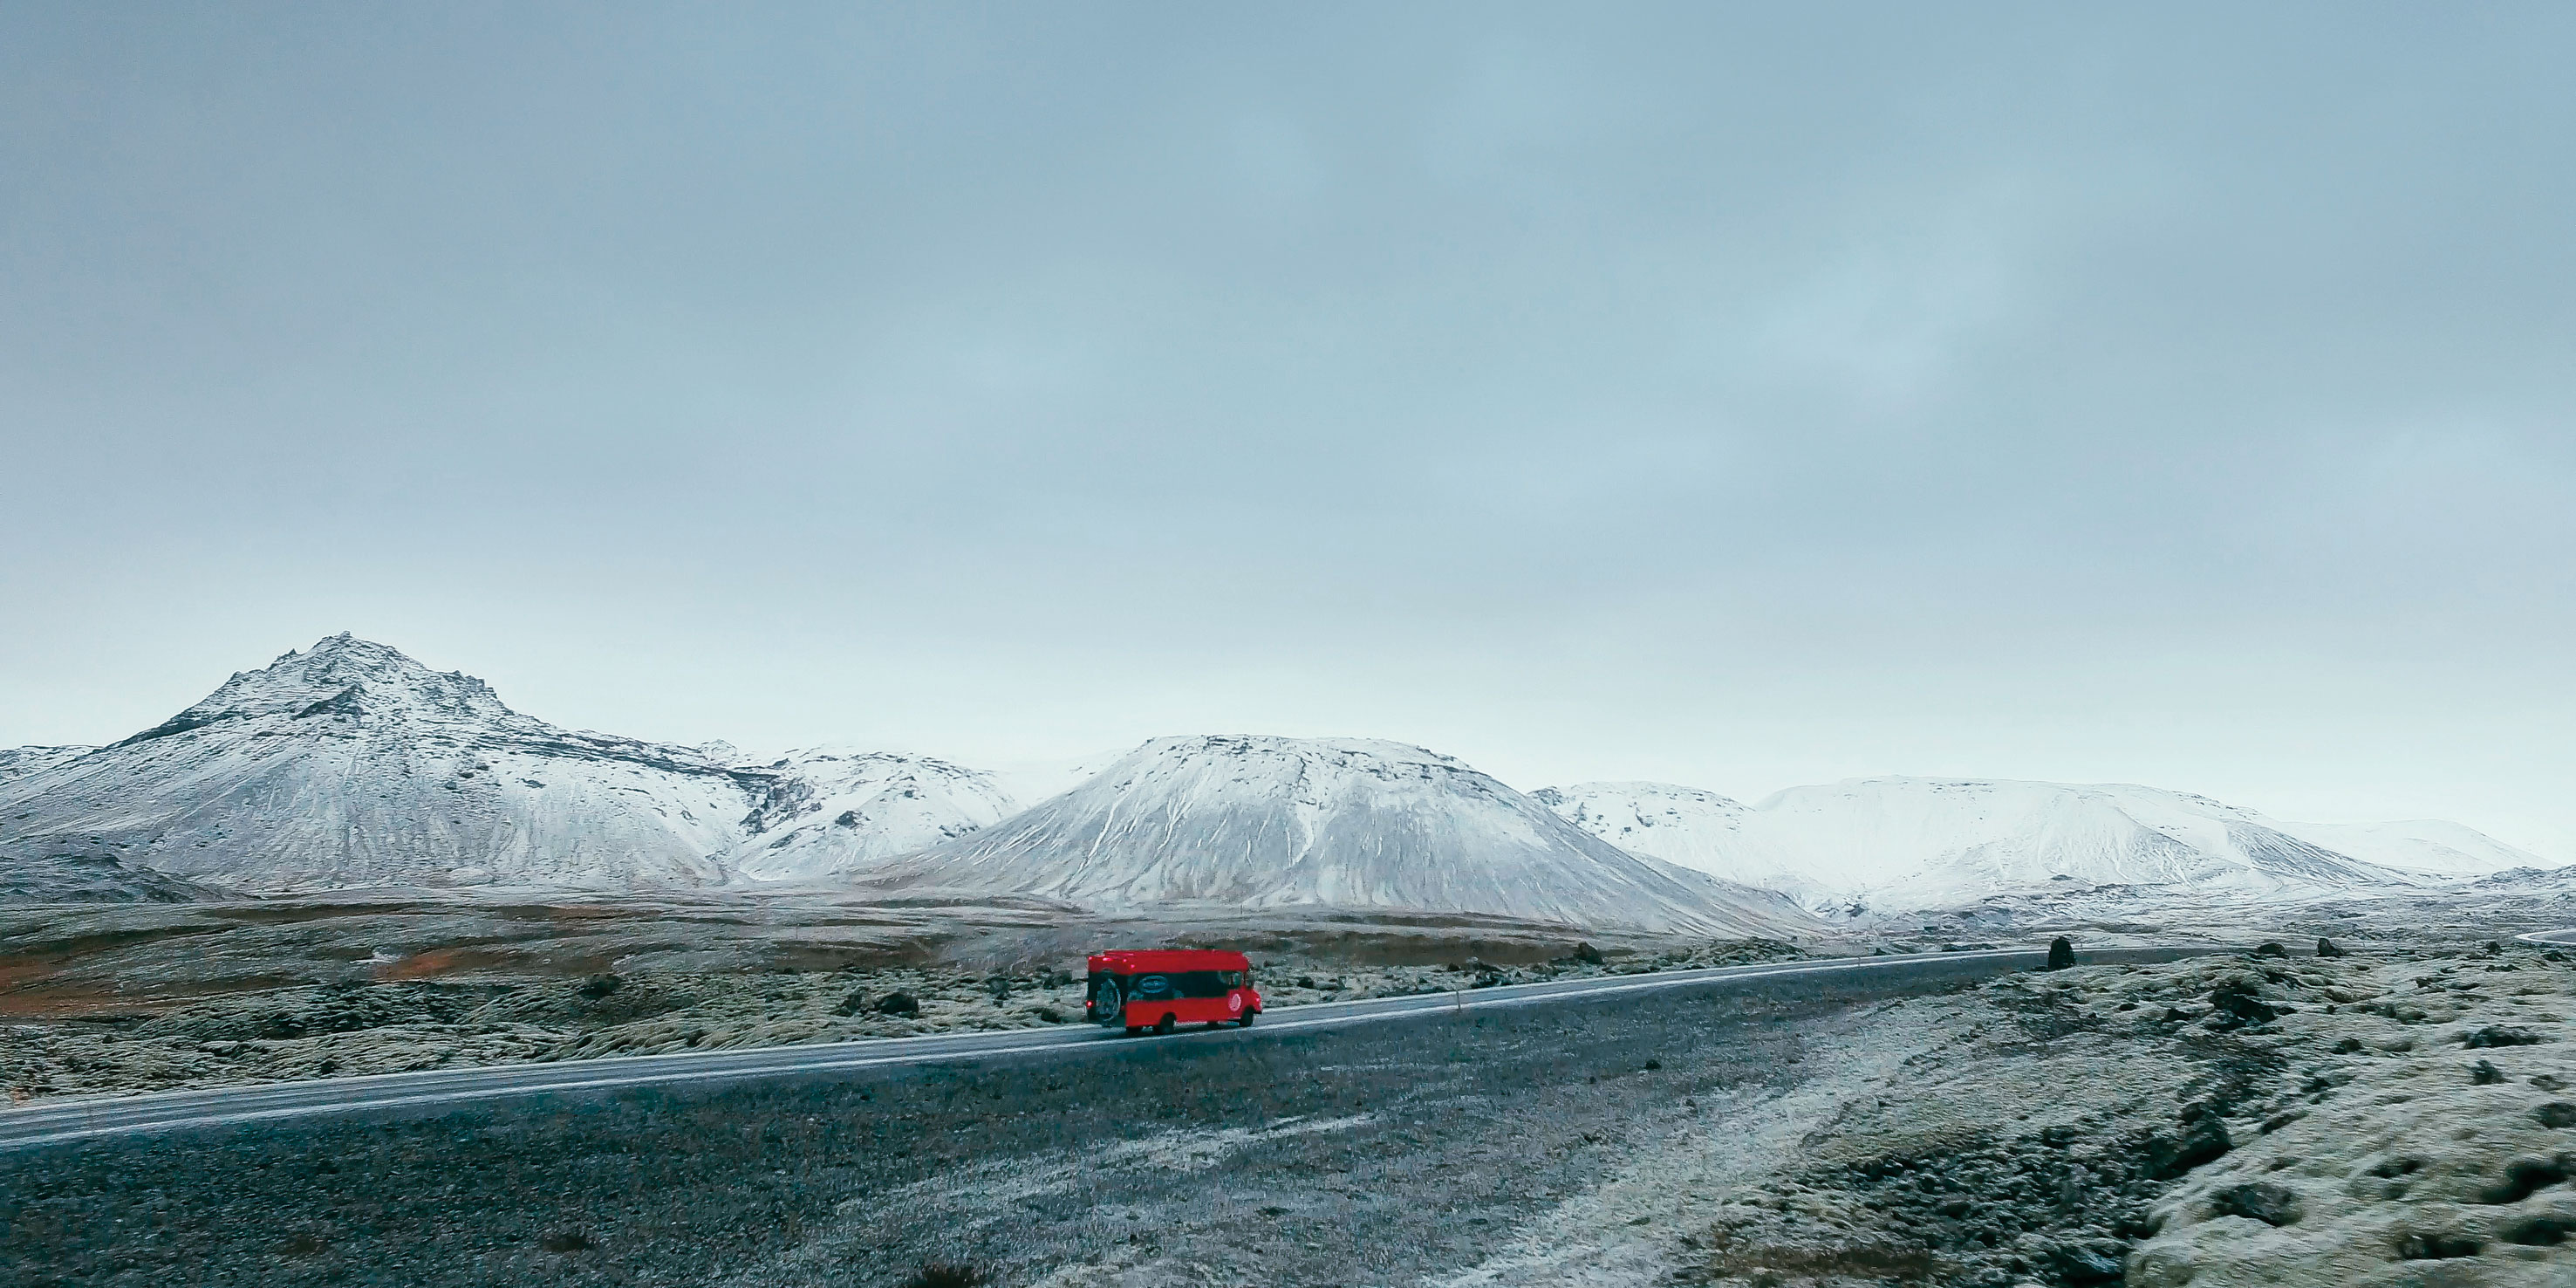 Our food truck on the way to a research station by a vulcano in Iceland.